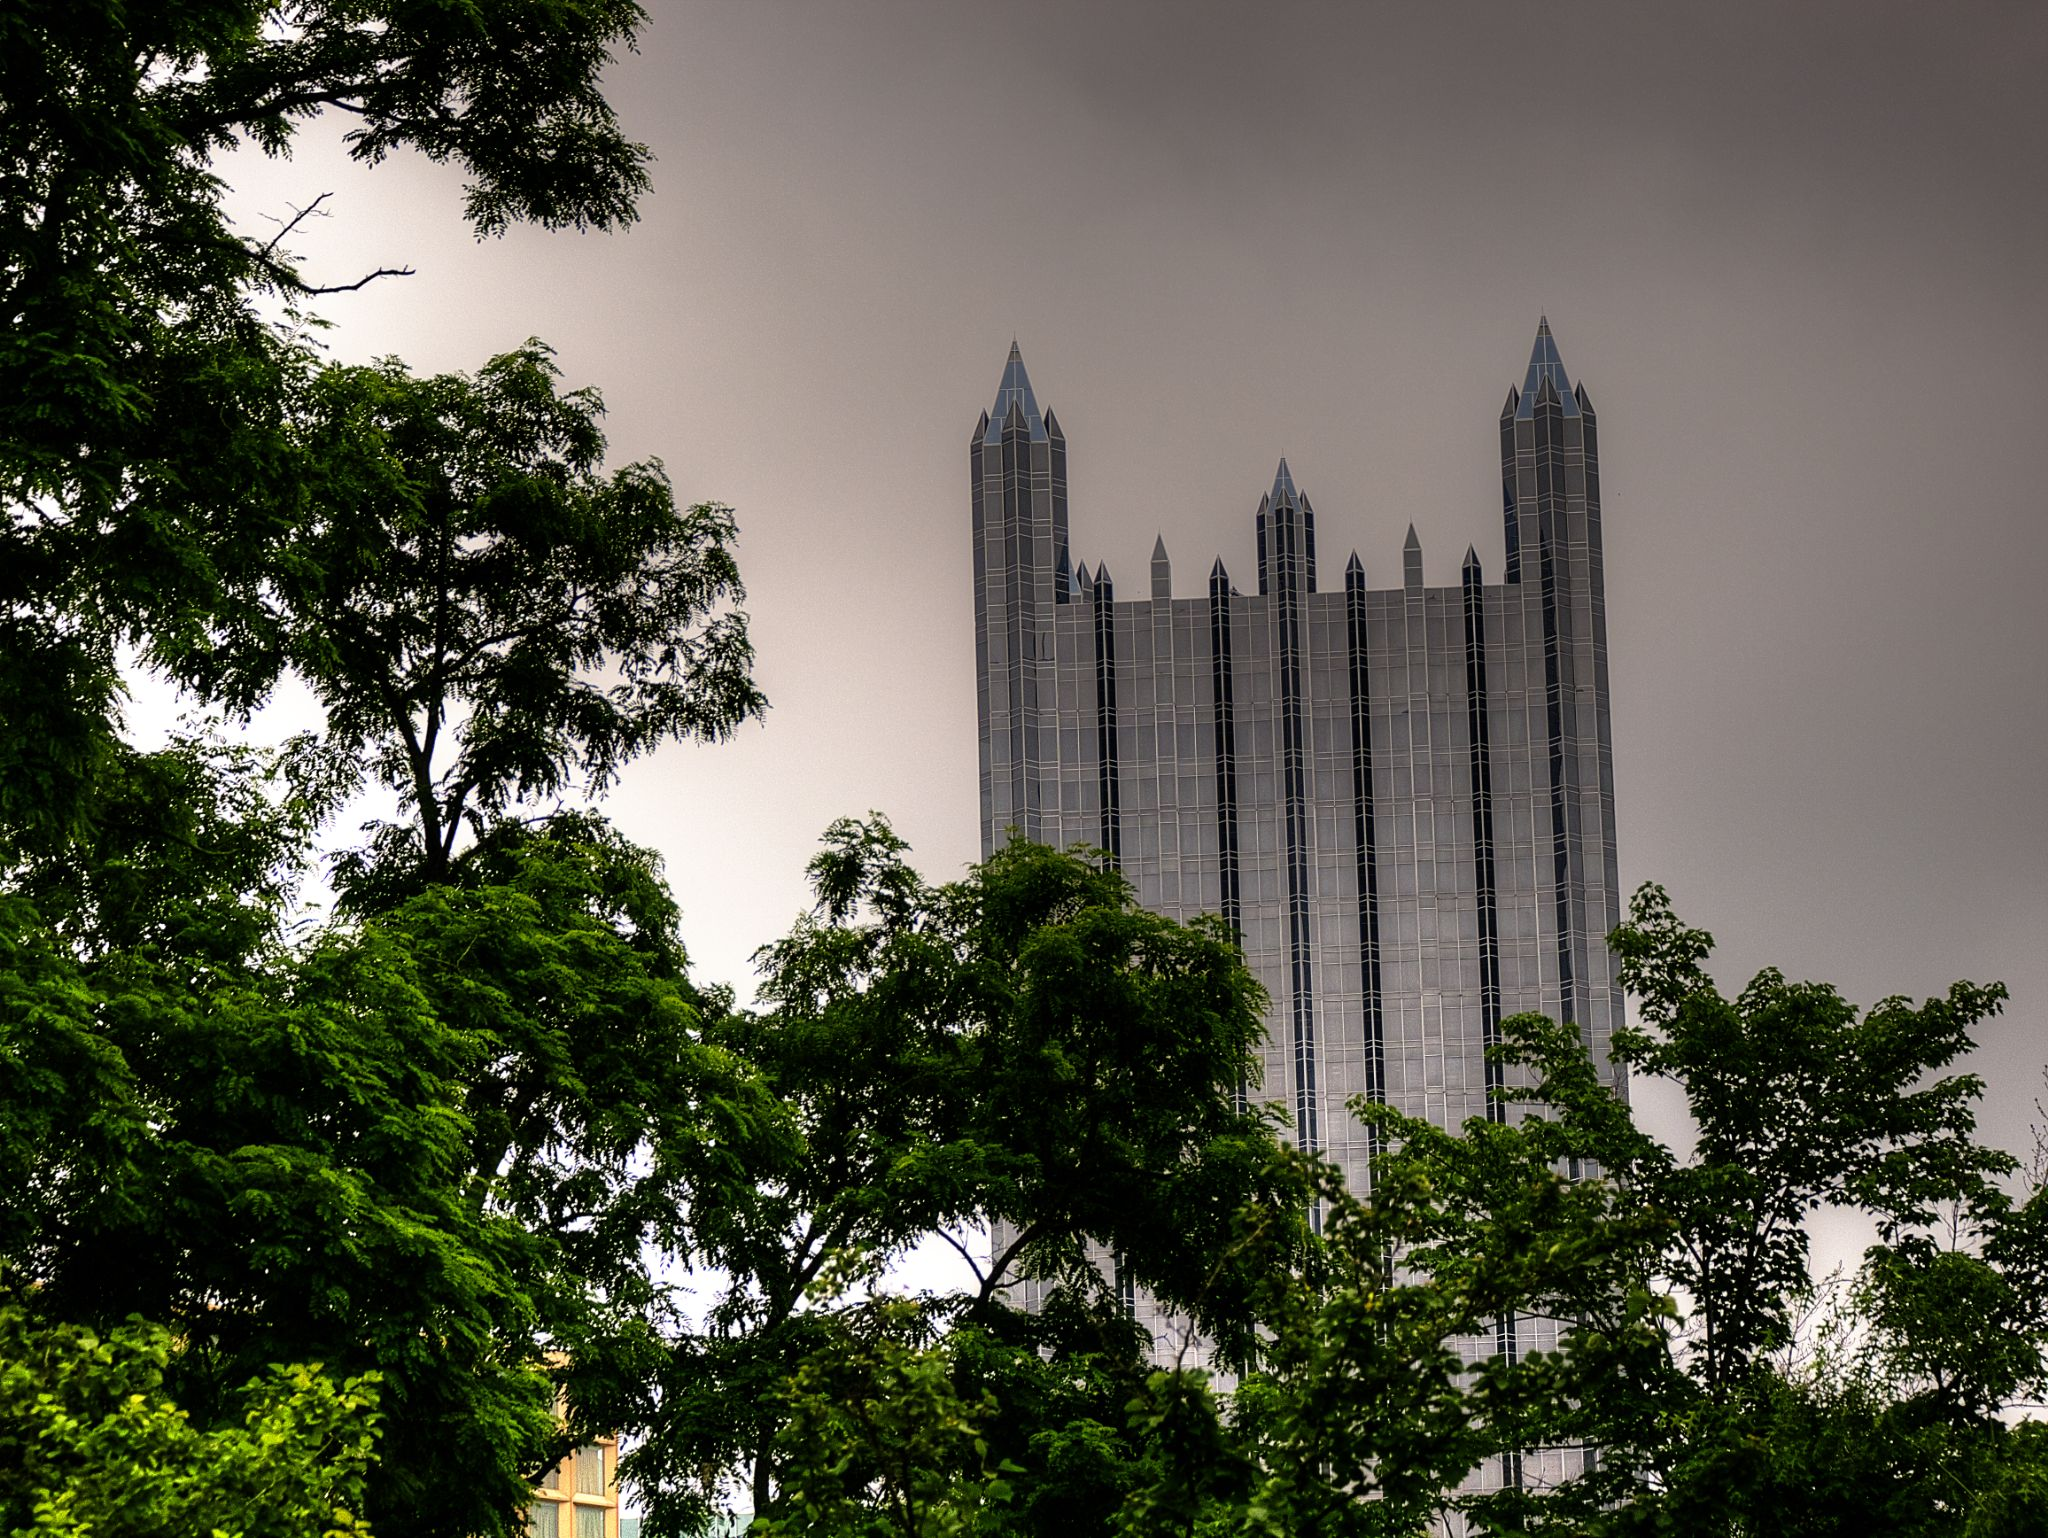 PPG Place by ThunderMountainPhoto